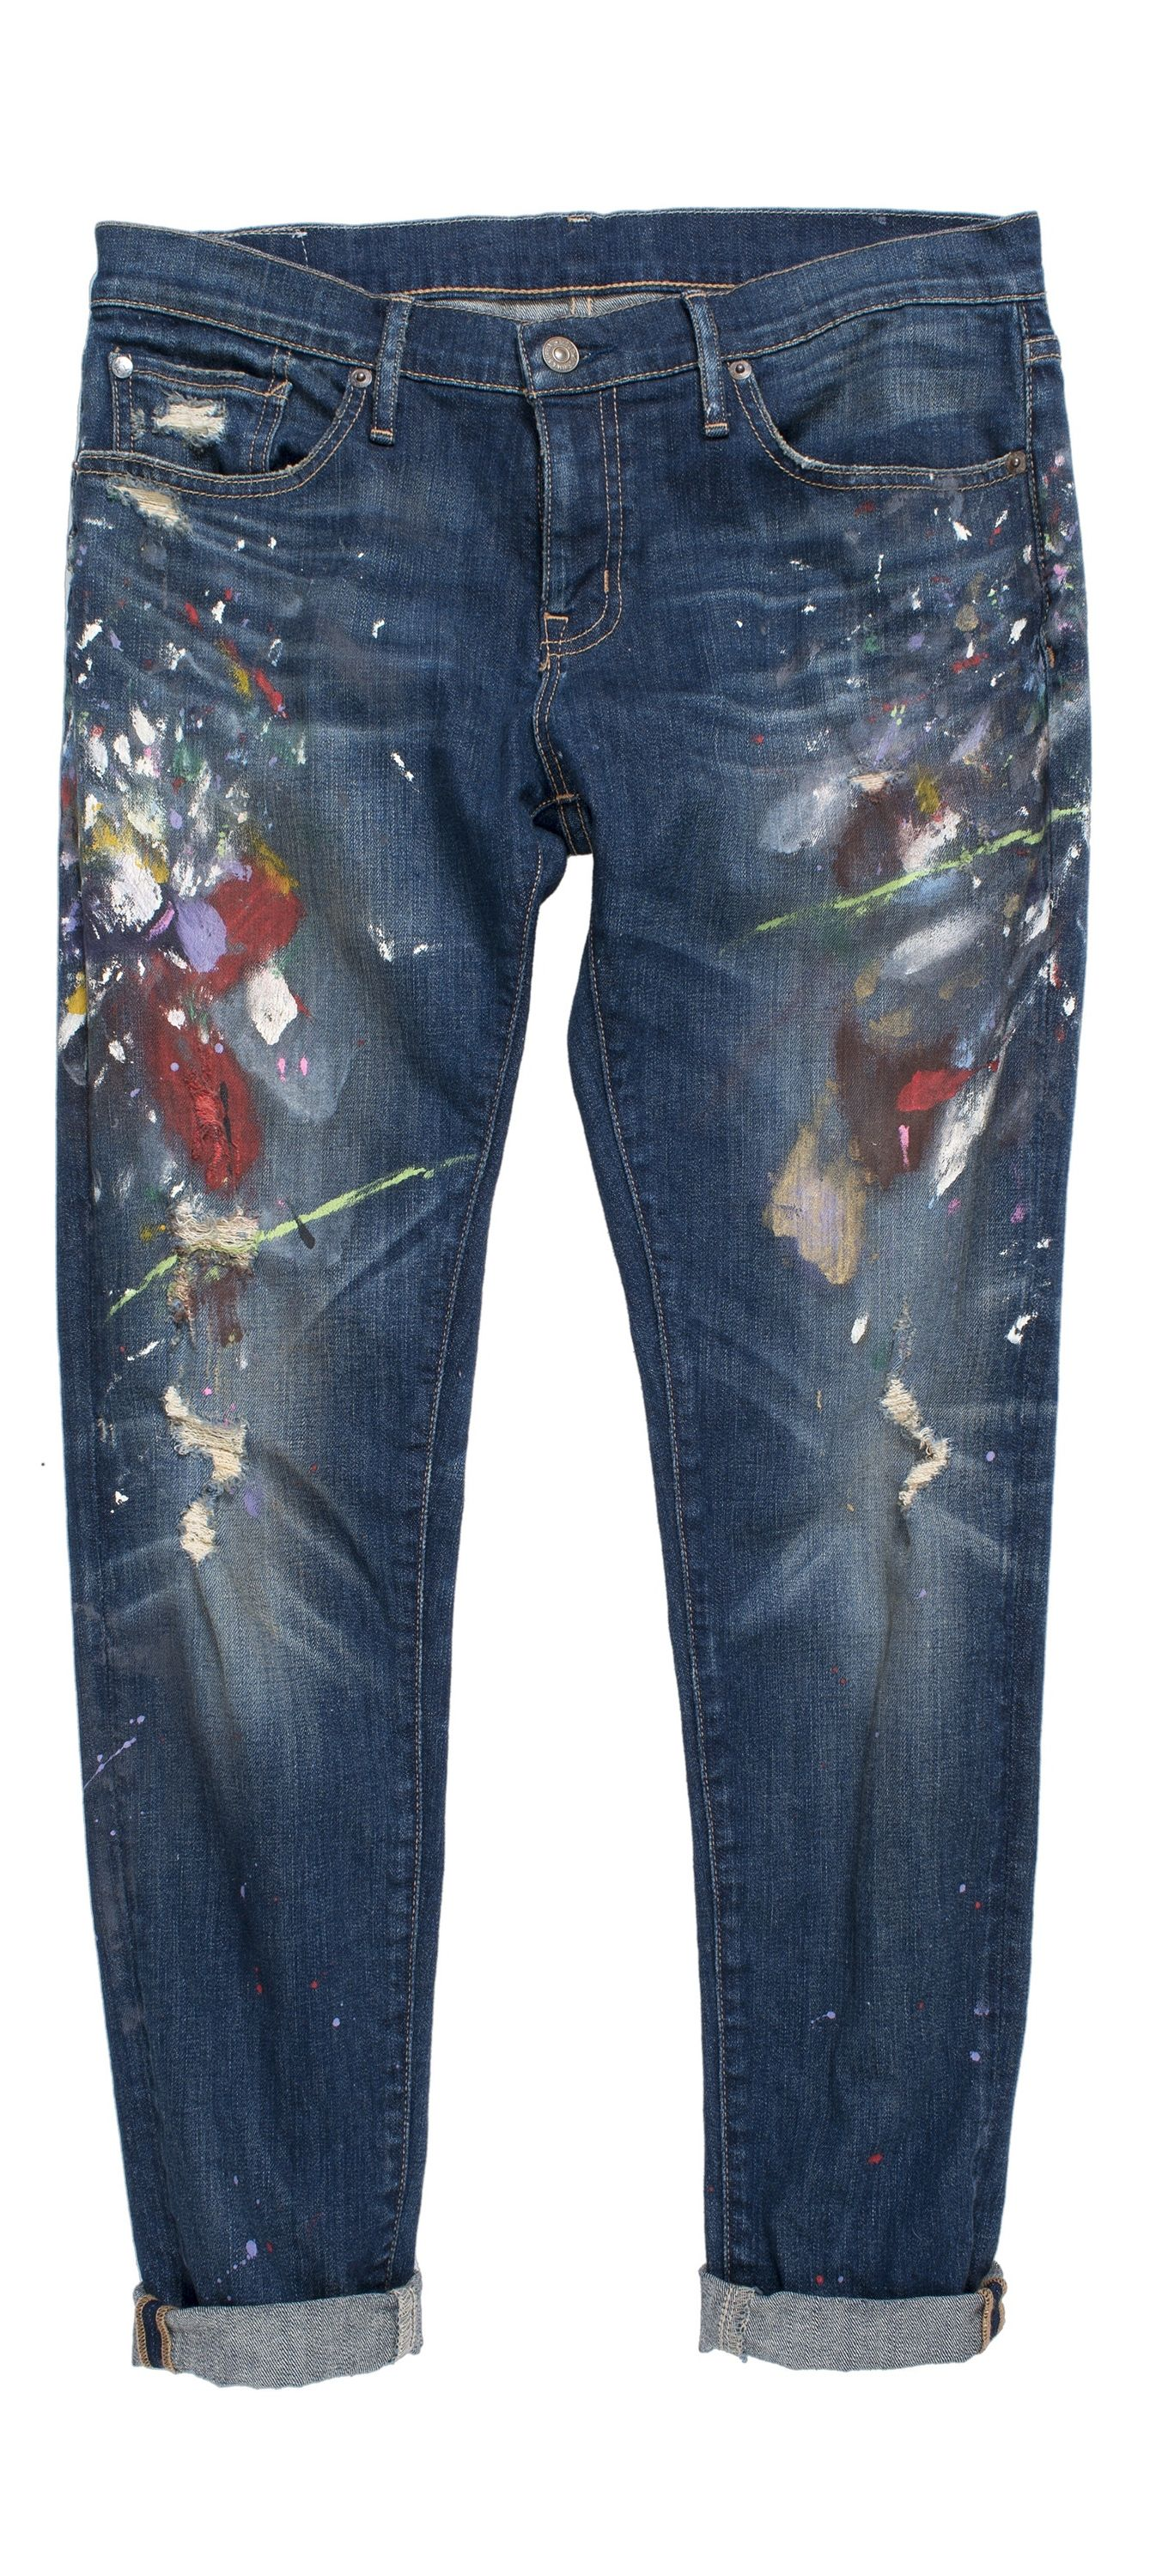 DENIM & SUPPLY 16 cm stretch Denim Jeans Spring/summer Ralph Lauren